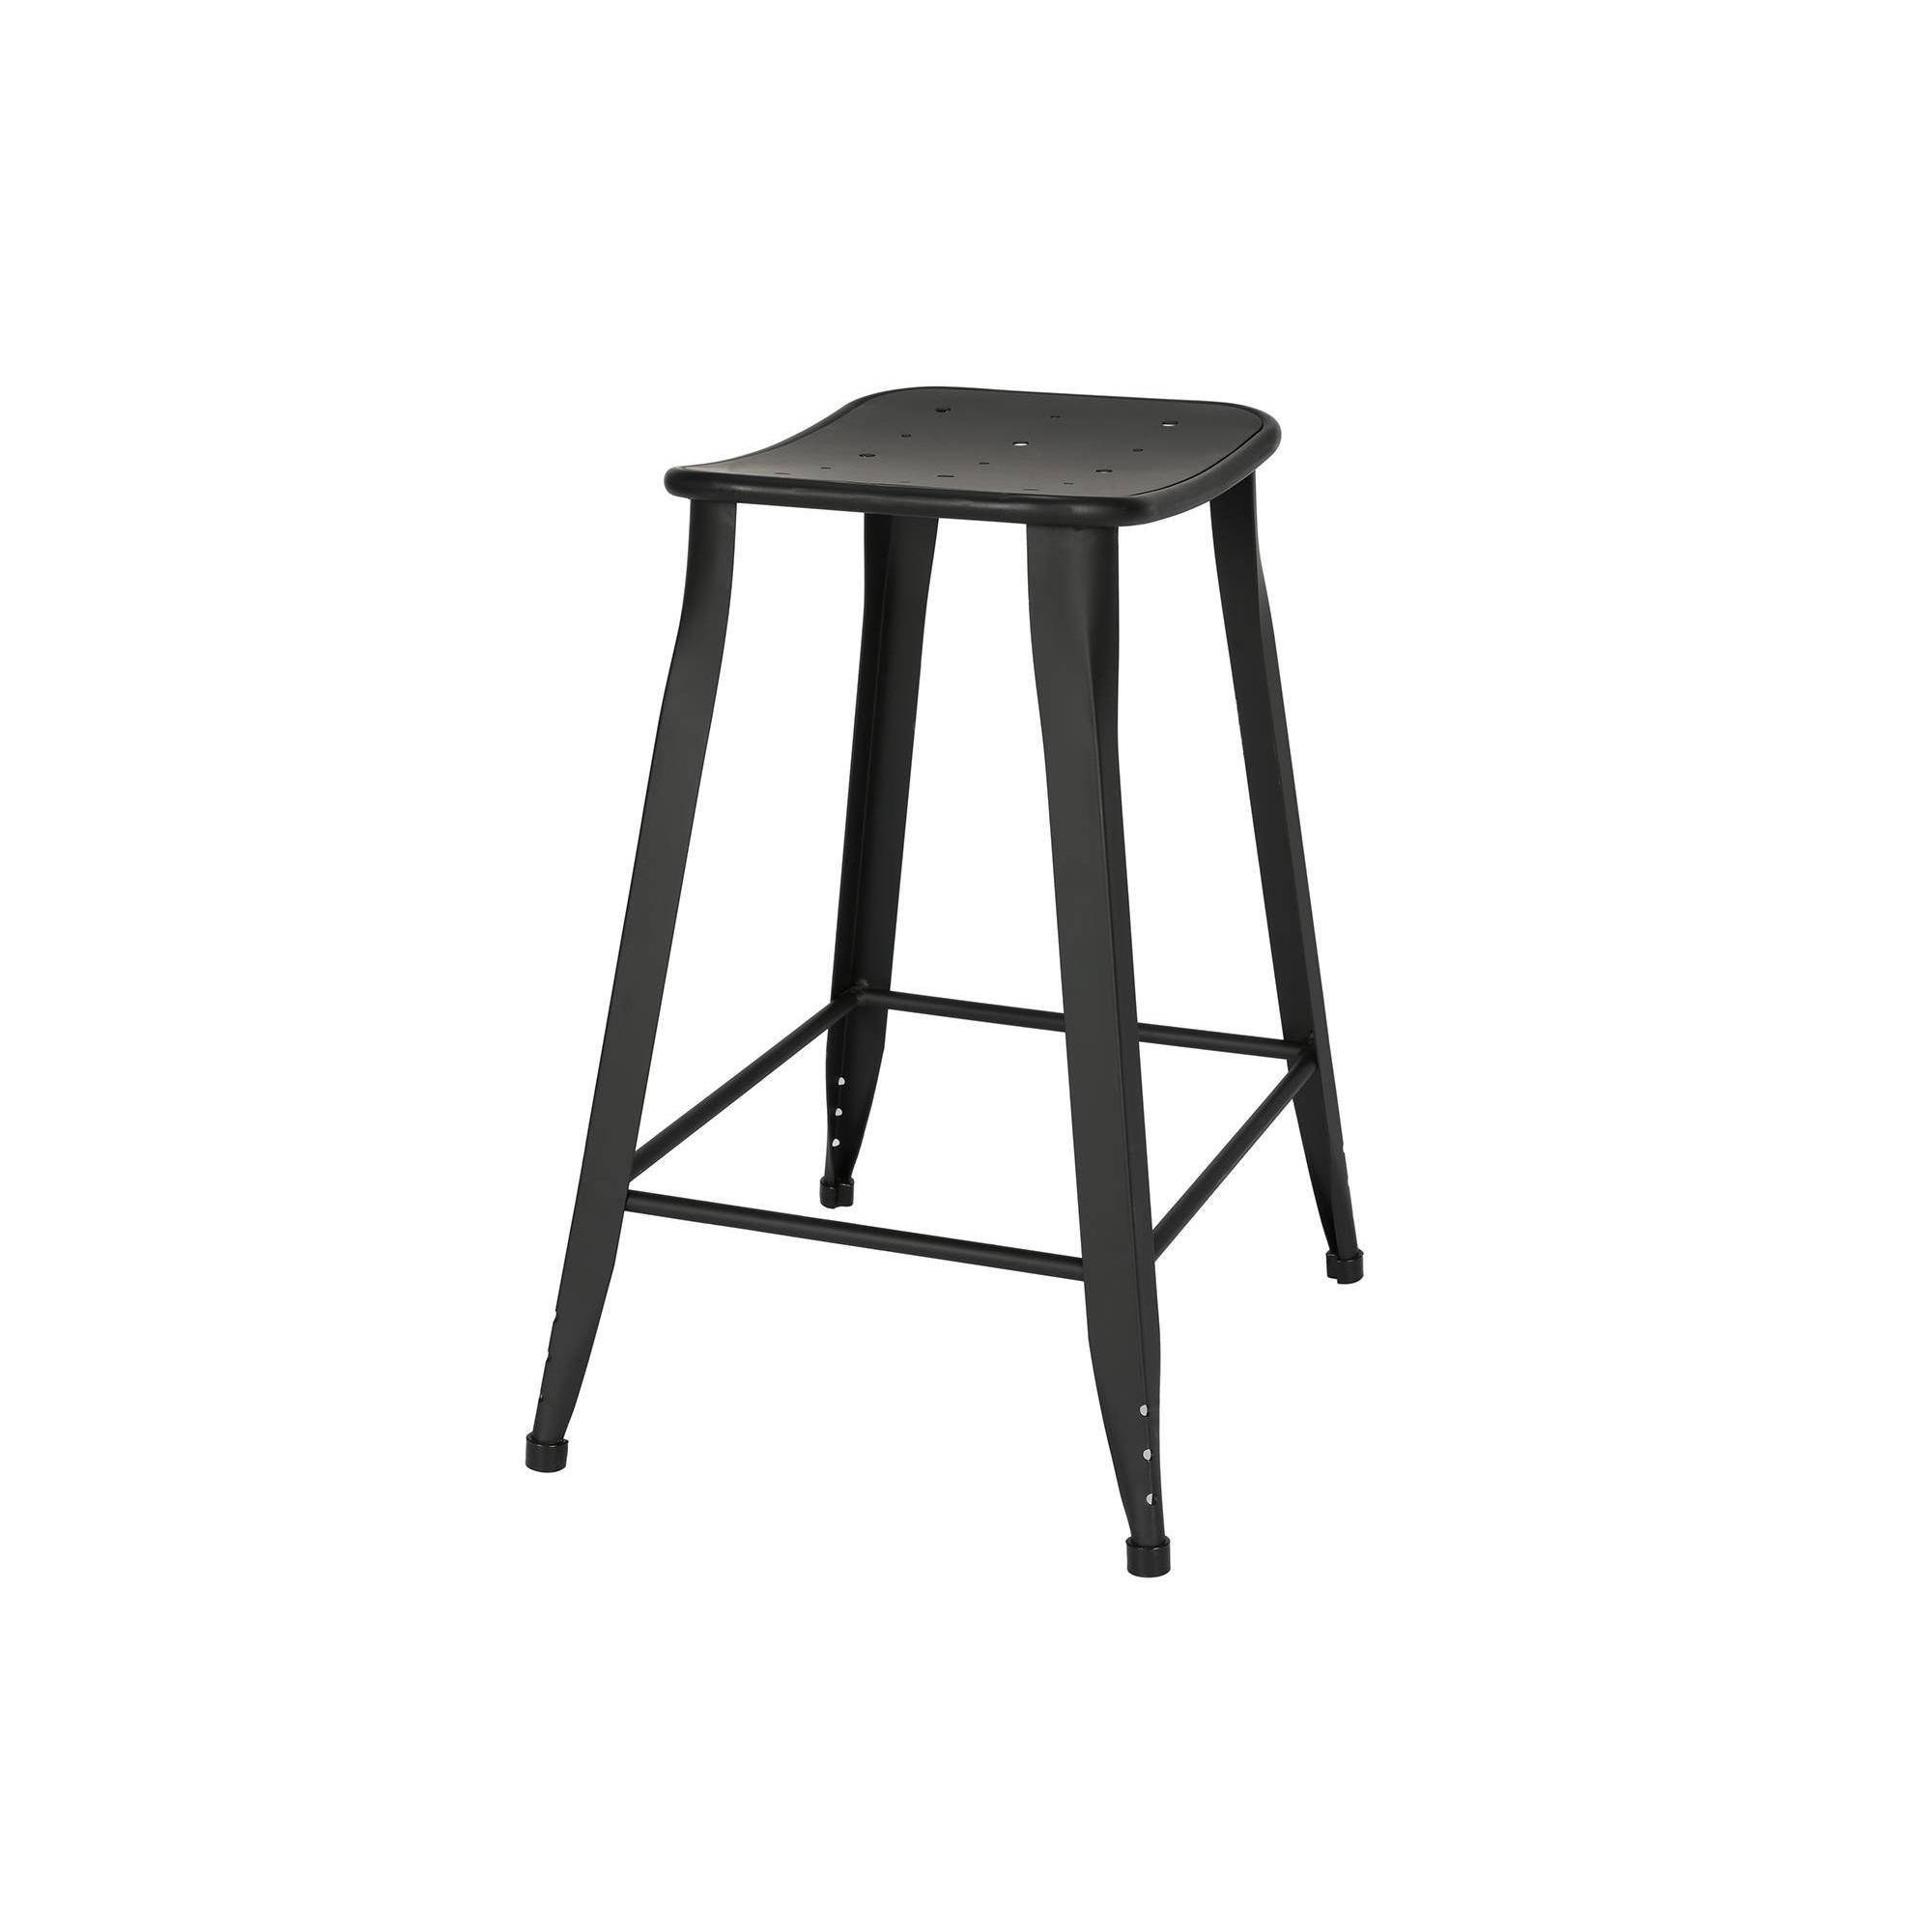 bar double back uk chrome and height for one stool with stools lacey world houzz counter ring pier black dimensions upholstered market